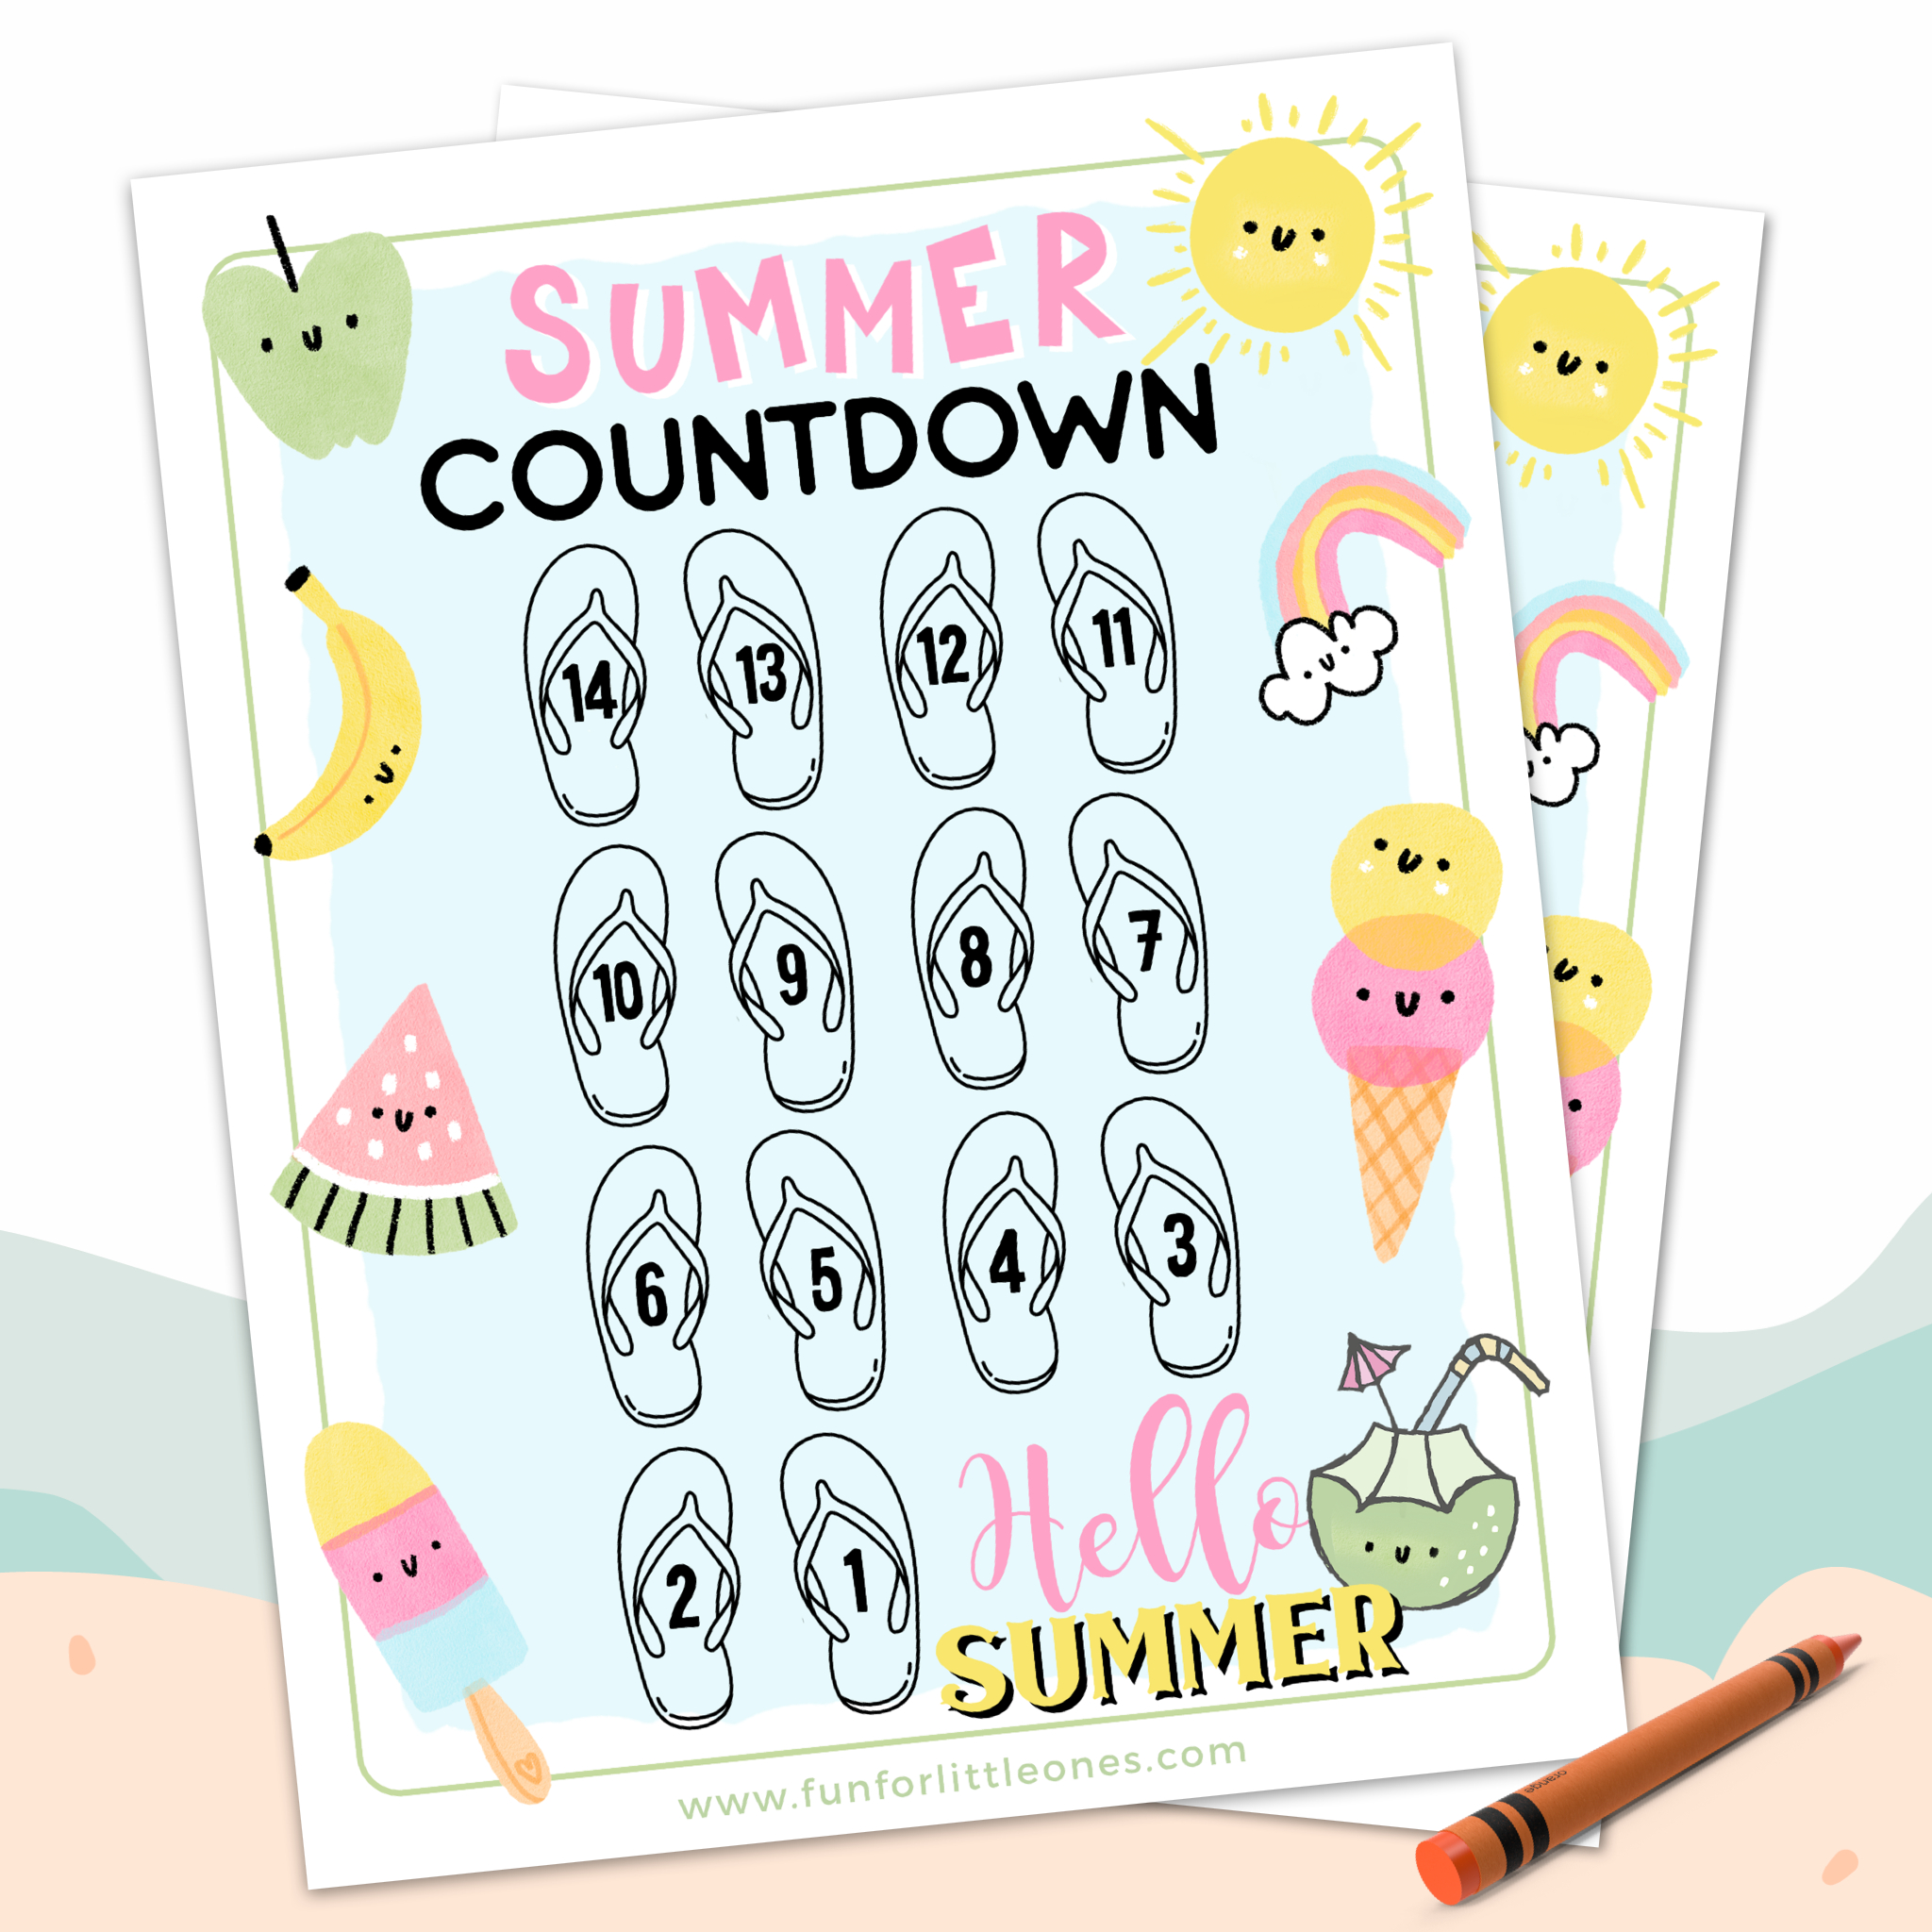 14 Days Summer Countdown Activity For Kids - Fun For Little Ones